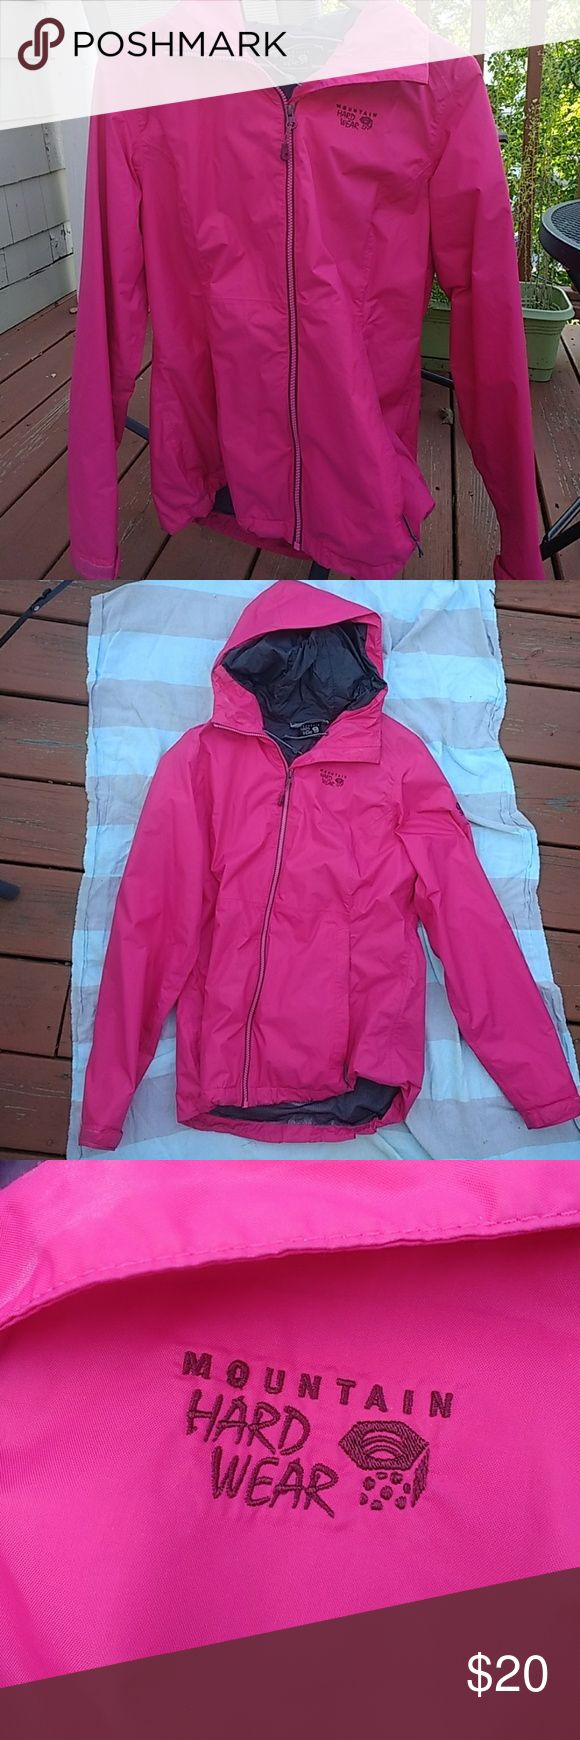 Mountain Hardwear Finder rain jacket Great waterproof jacket in highly visible hot pink. Interior is soft mesh. Very good used condition. Mountain Hardwear Jackets & Coats